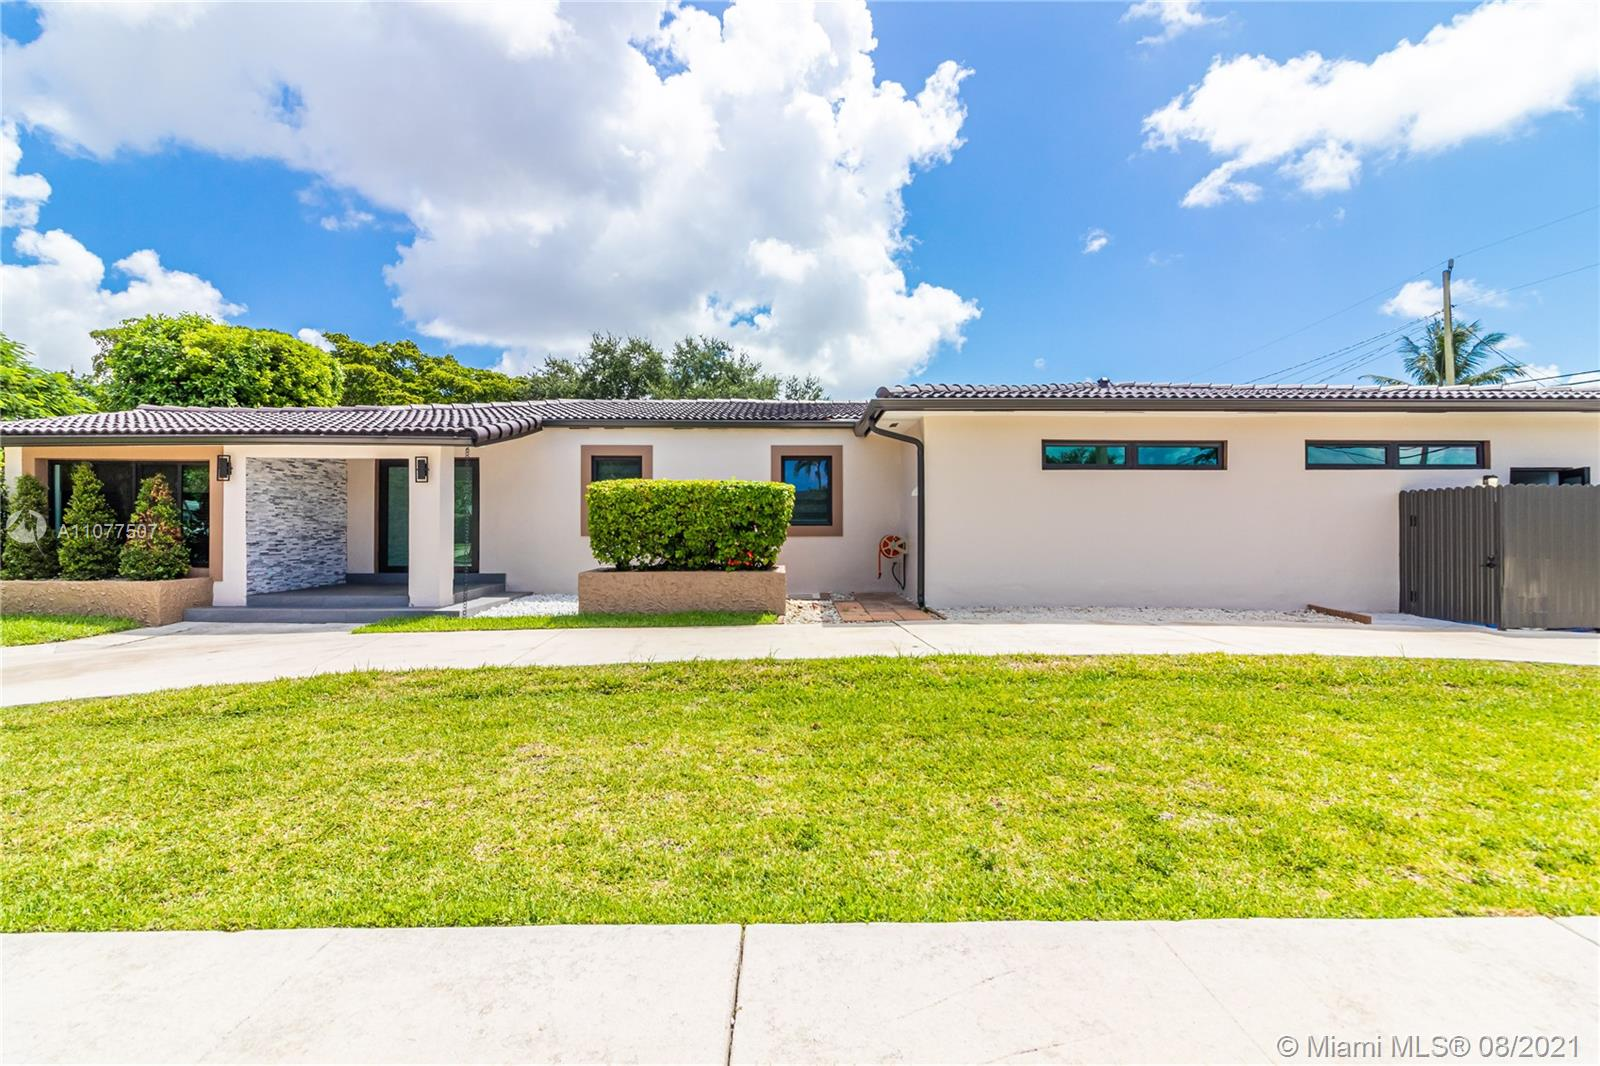 Photo of 6386 SW 15th St, Home